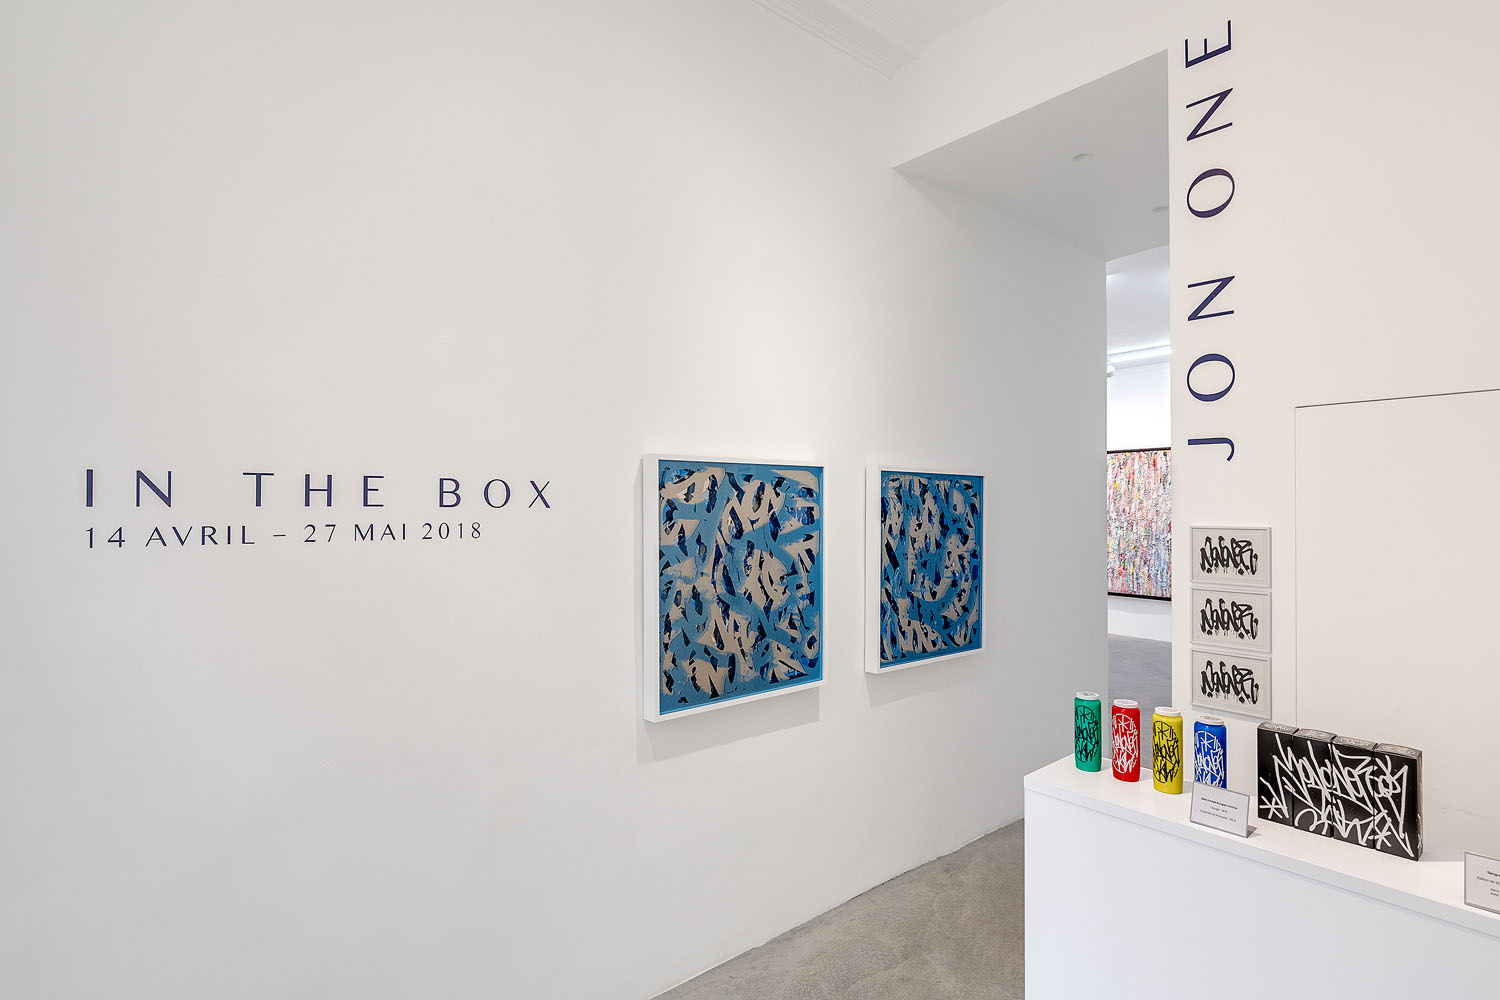 IN THE BOX, Galerie Rabouan Moussion, 14 avril-27 mai 2018